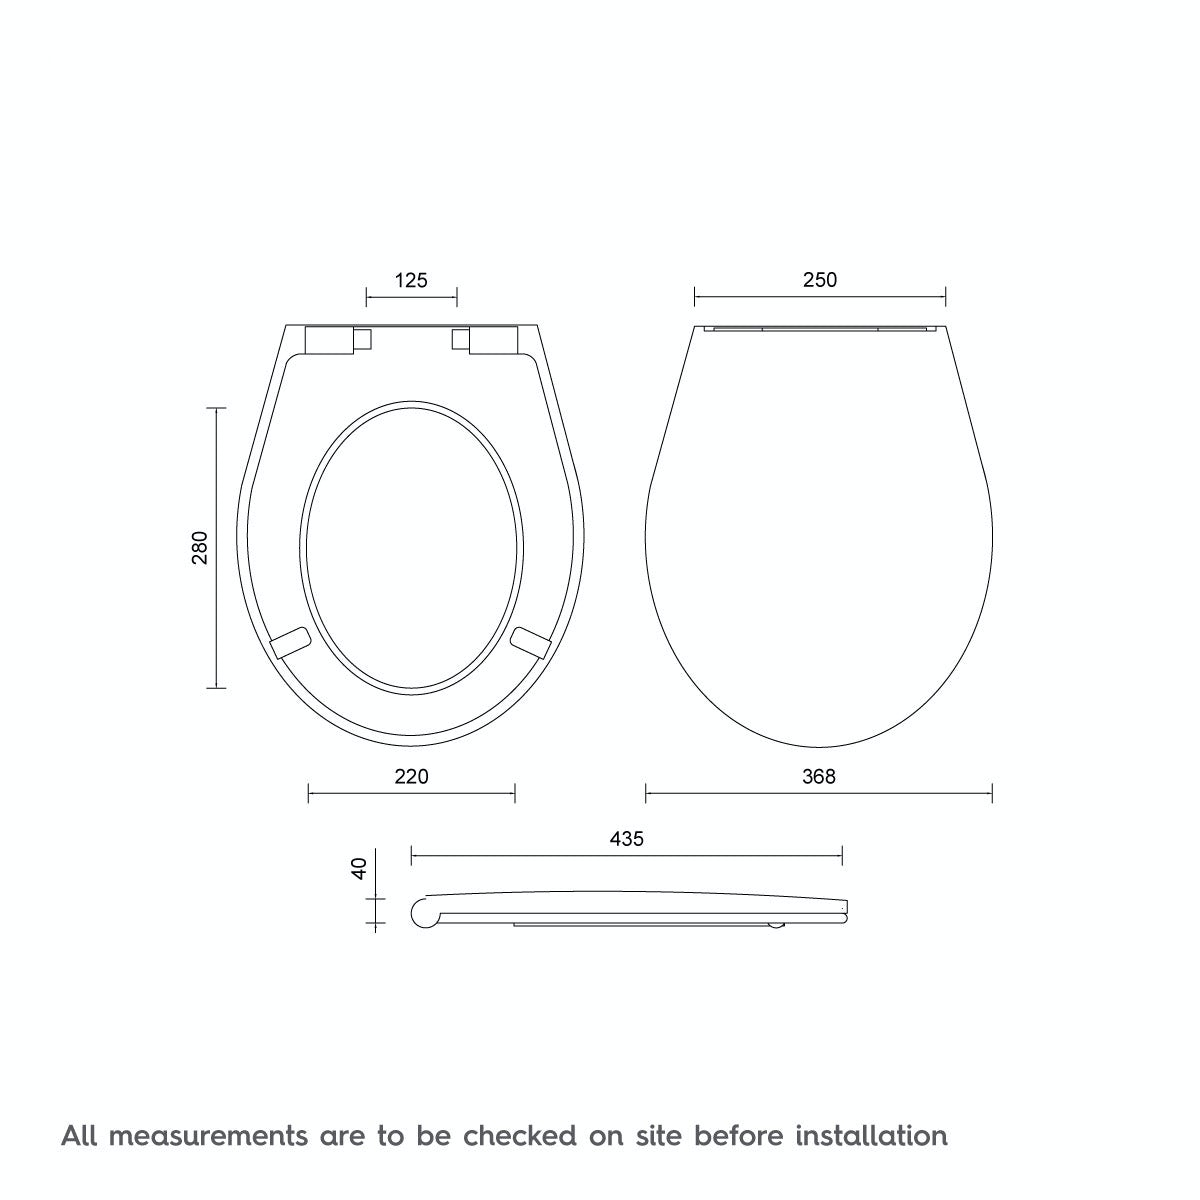 Dimensions for Universal Thermoset Top Fix Toilet Seat with Stainless Steel Soft Close and Lift Off